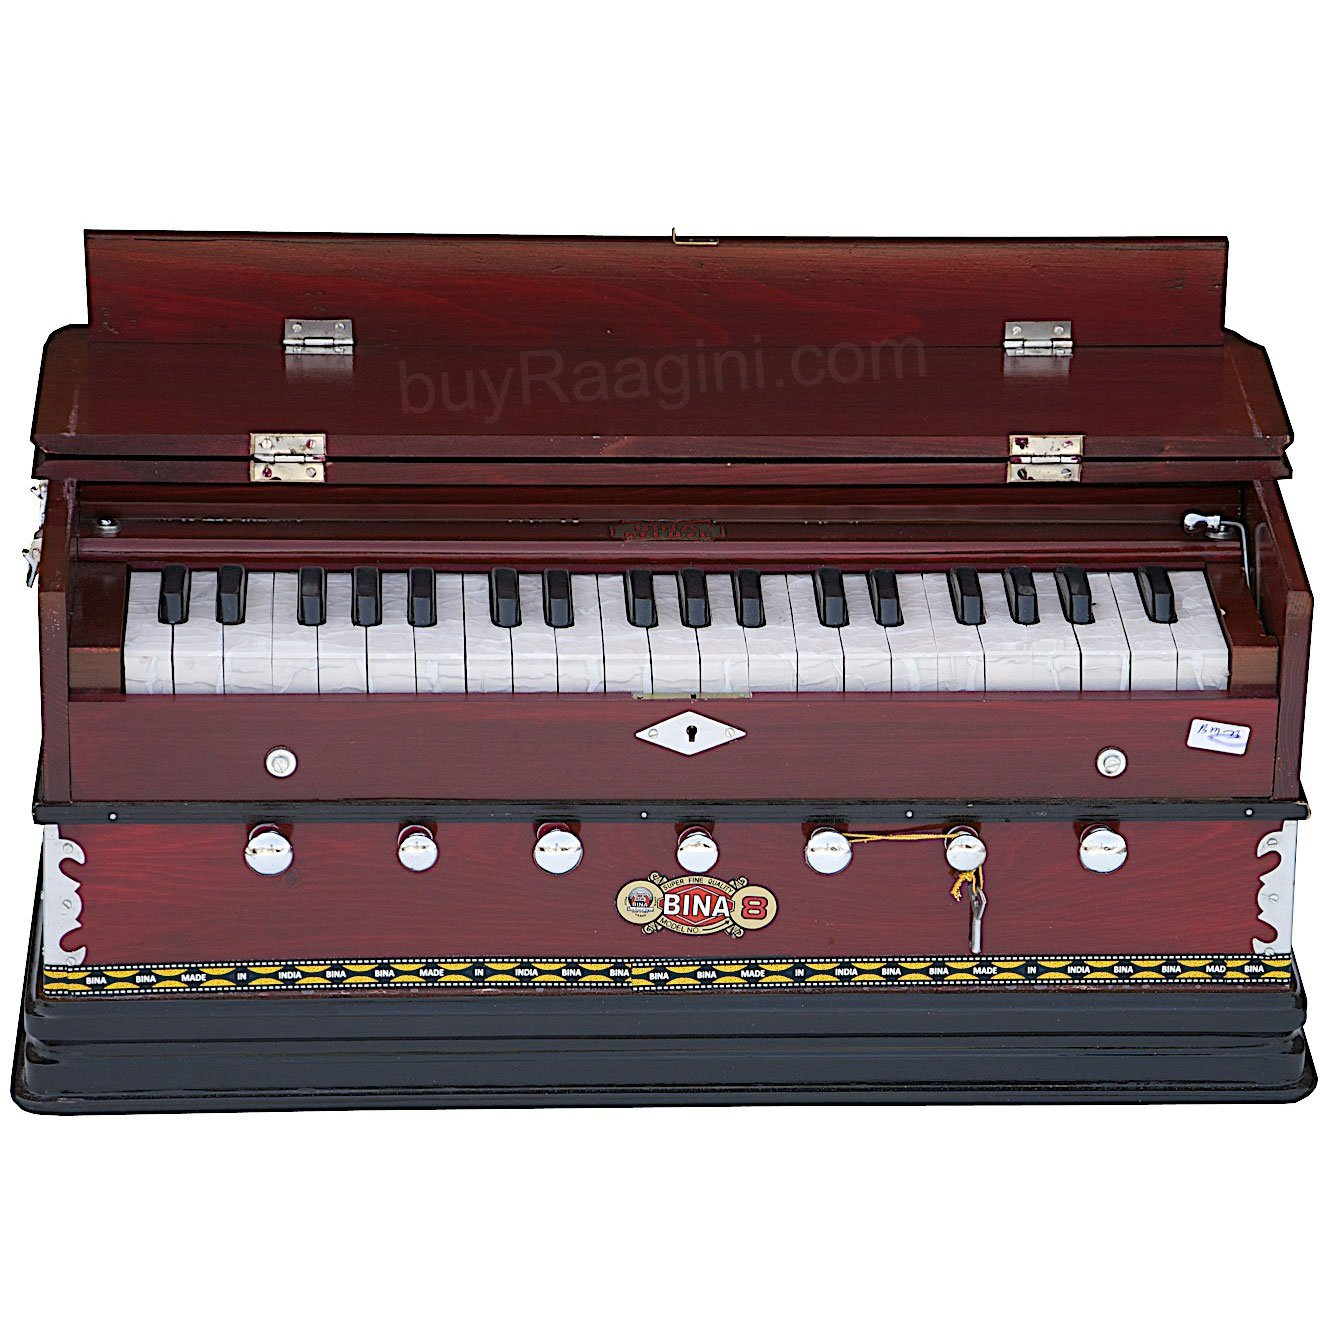 BINA No. 8 Harmonium, In USA, 7 Stops, Rosewood Color, 3 1/4 Octaves, Coupler, Tuned to A440, Double Reed, Book, Bag, Musical Instrument Indian (PDI-AGD) by Bina